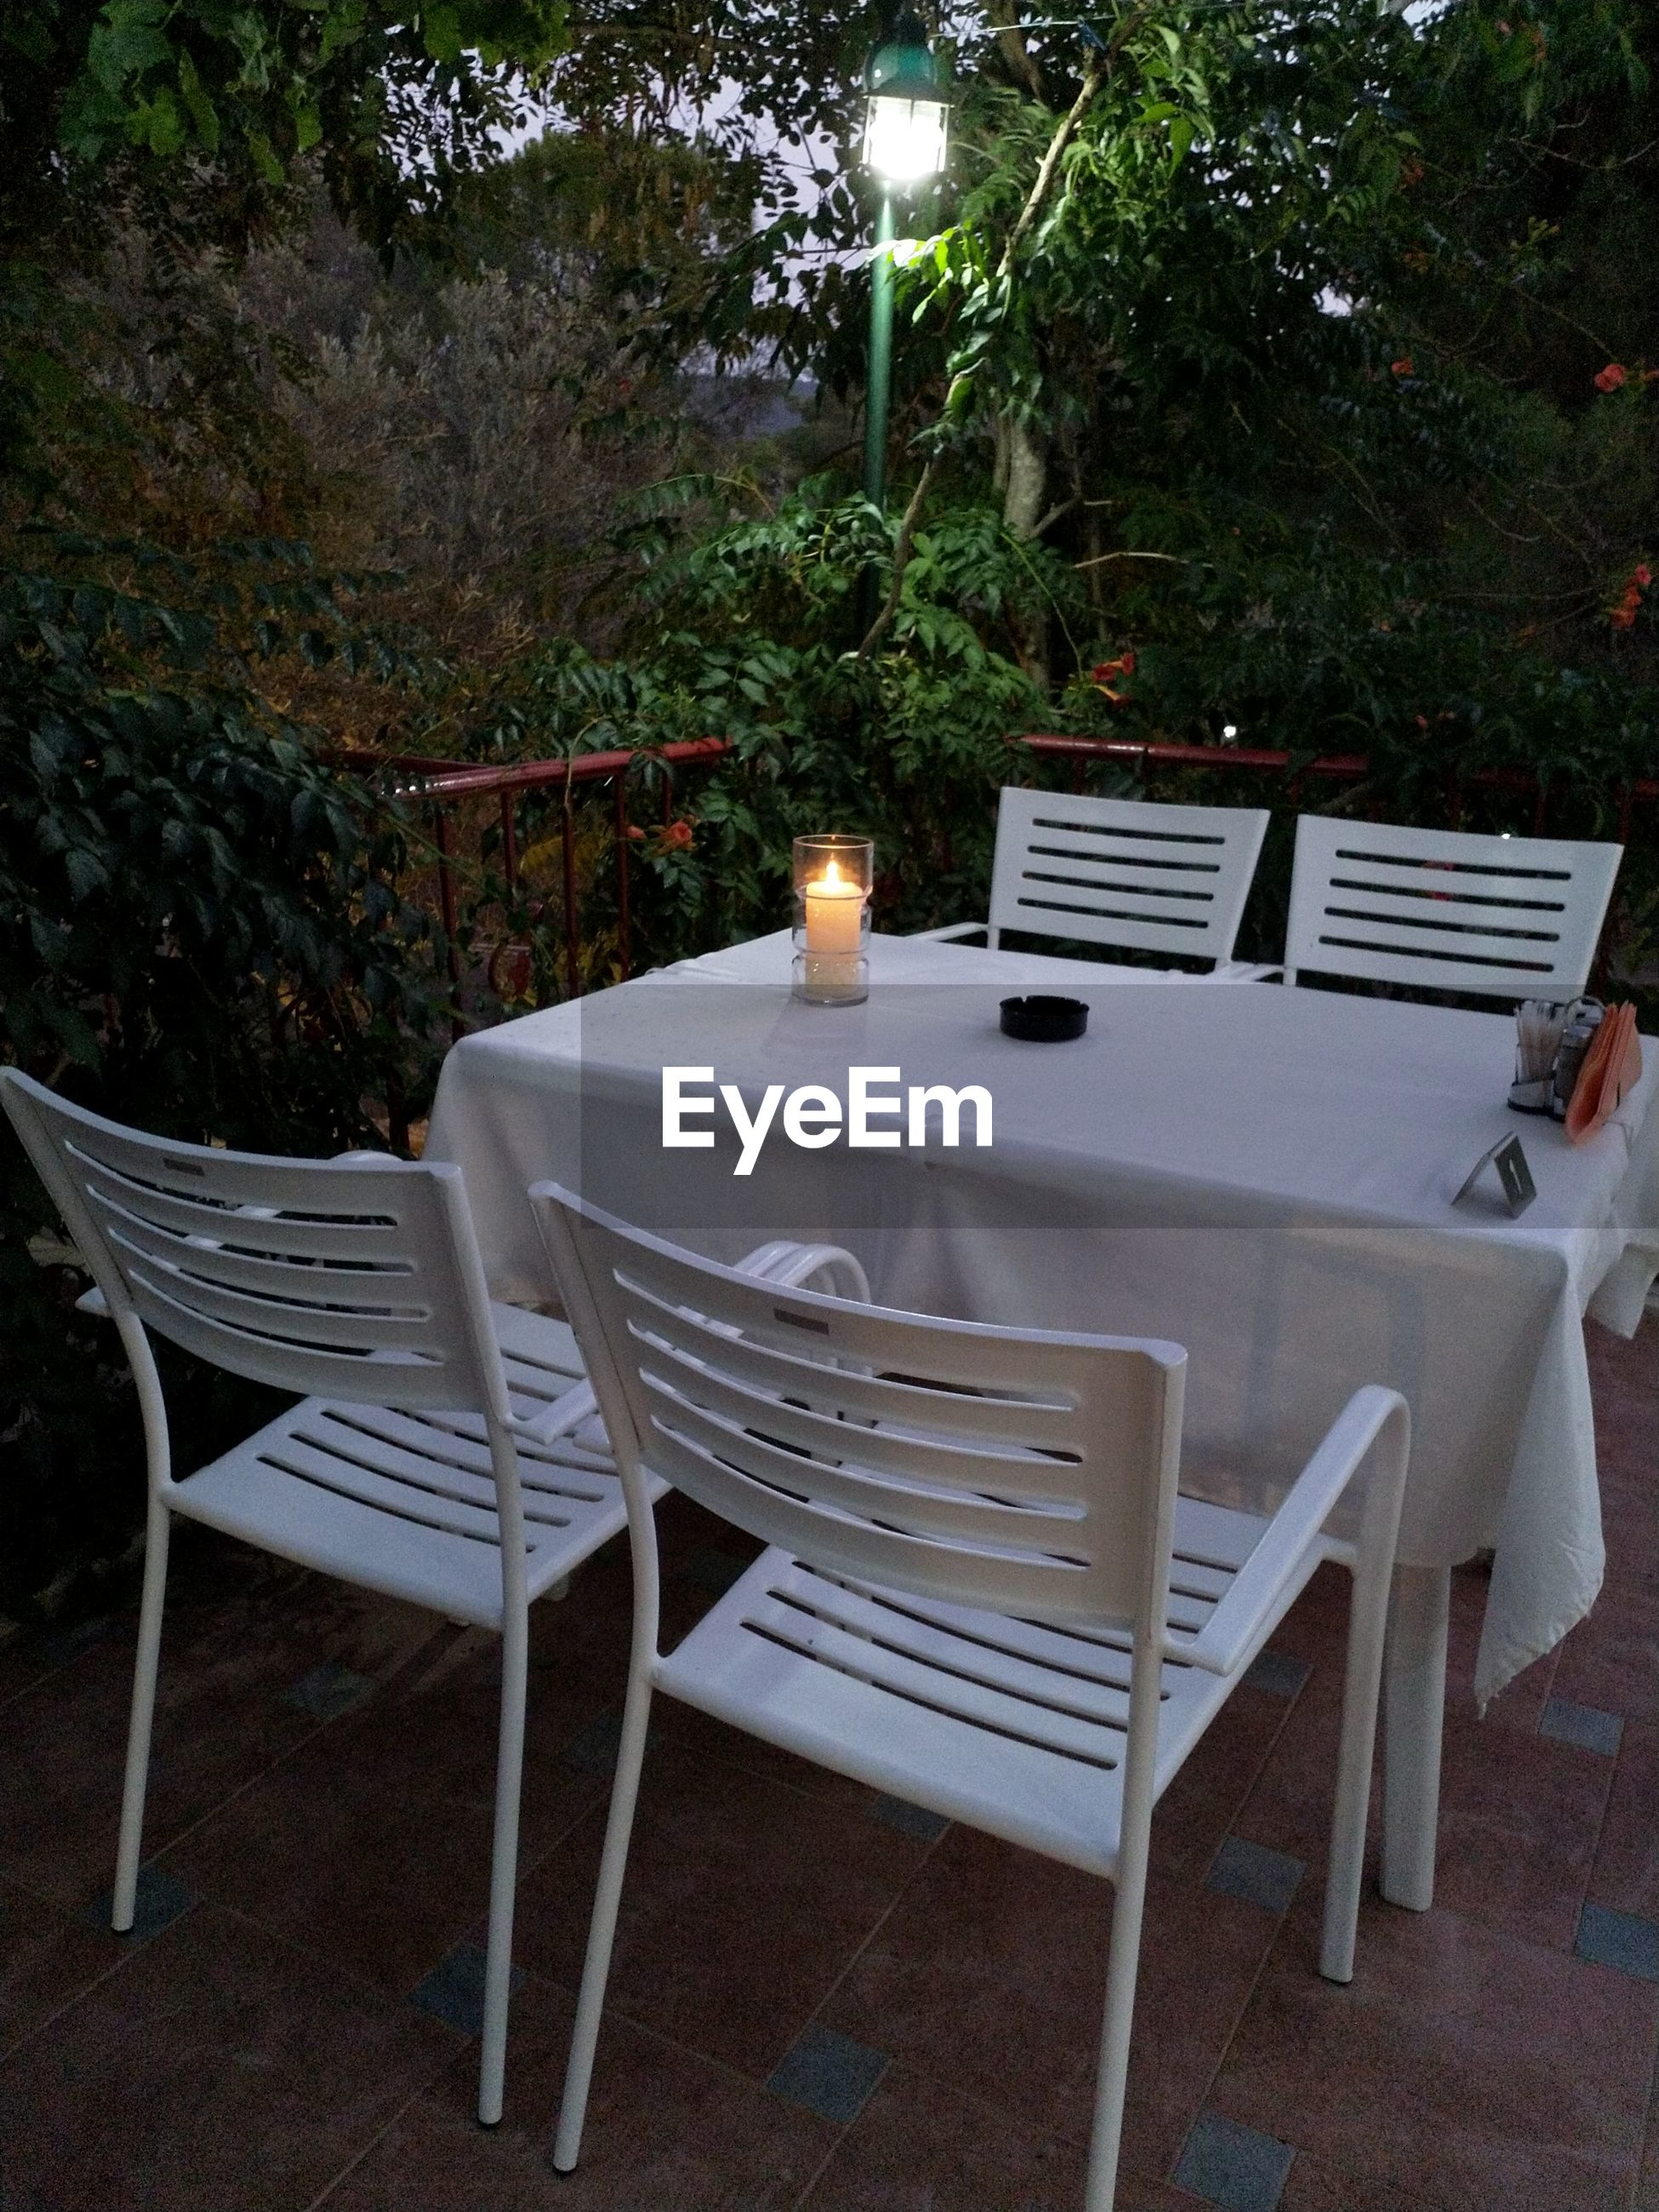 seat, chair, table, plant, no people, absence, food and drink, nature, restaurant, empty, candle, illuminated, lighting equipment, place setting, furniture, tree, night, setting, glass, outdoors, dining